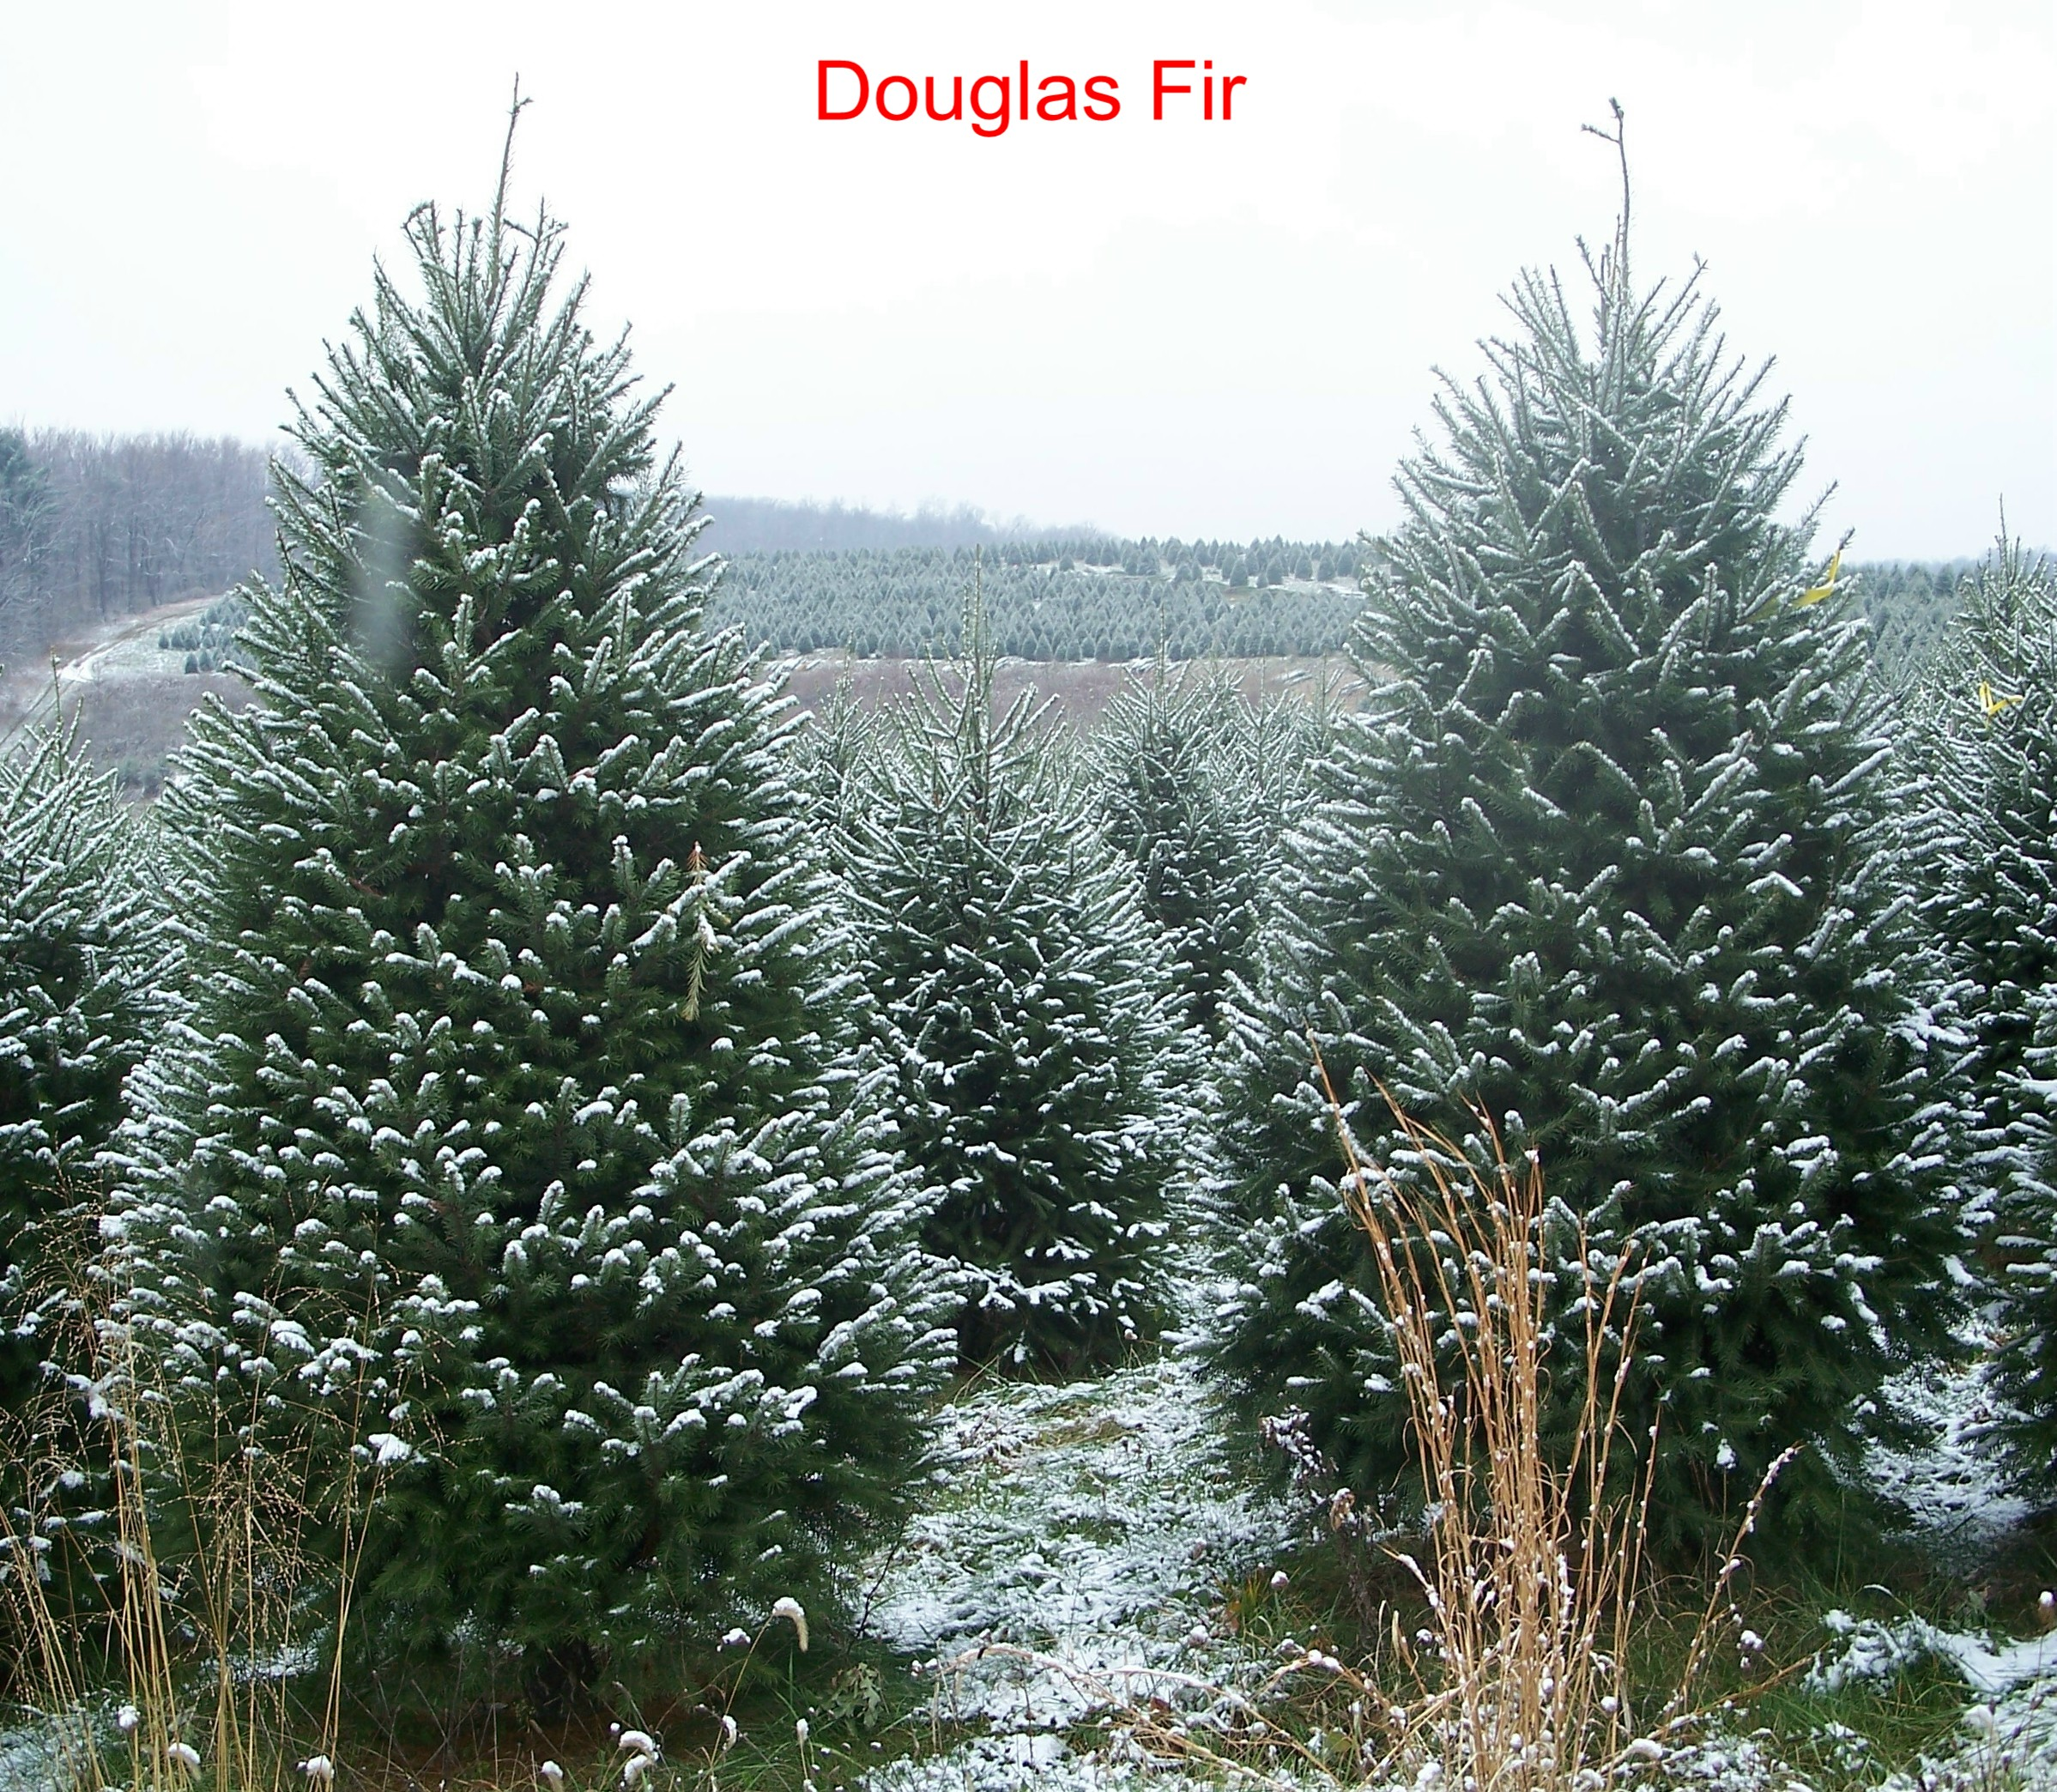 david douglas and the douglas fir Sourced from evergreen fir trees in new zealand, douglas fir oil possesses a unique chemical composition that gives it a purifying, uplifting, refreshing fragrance.